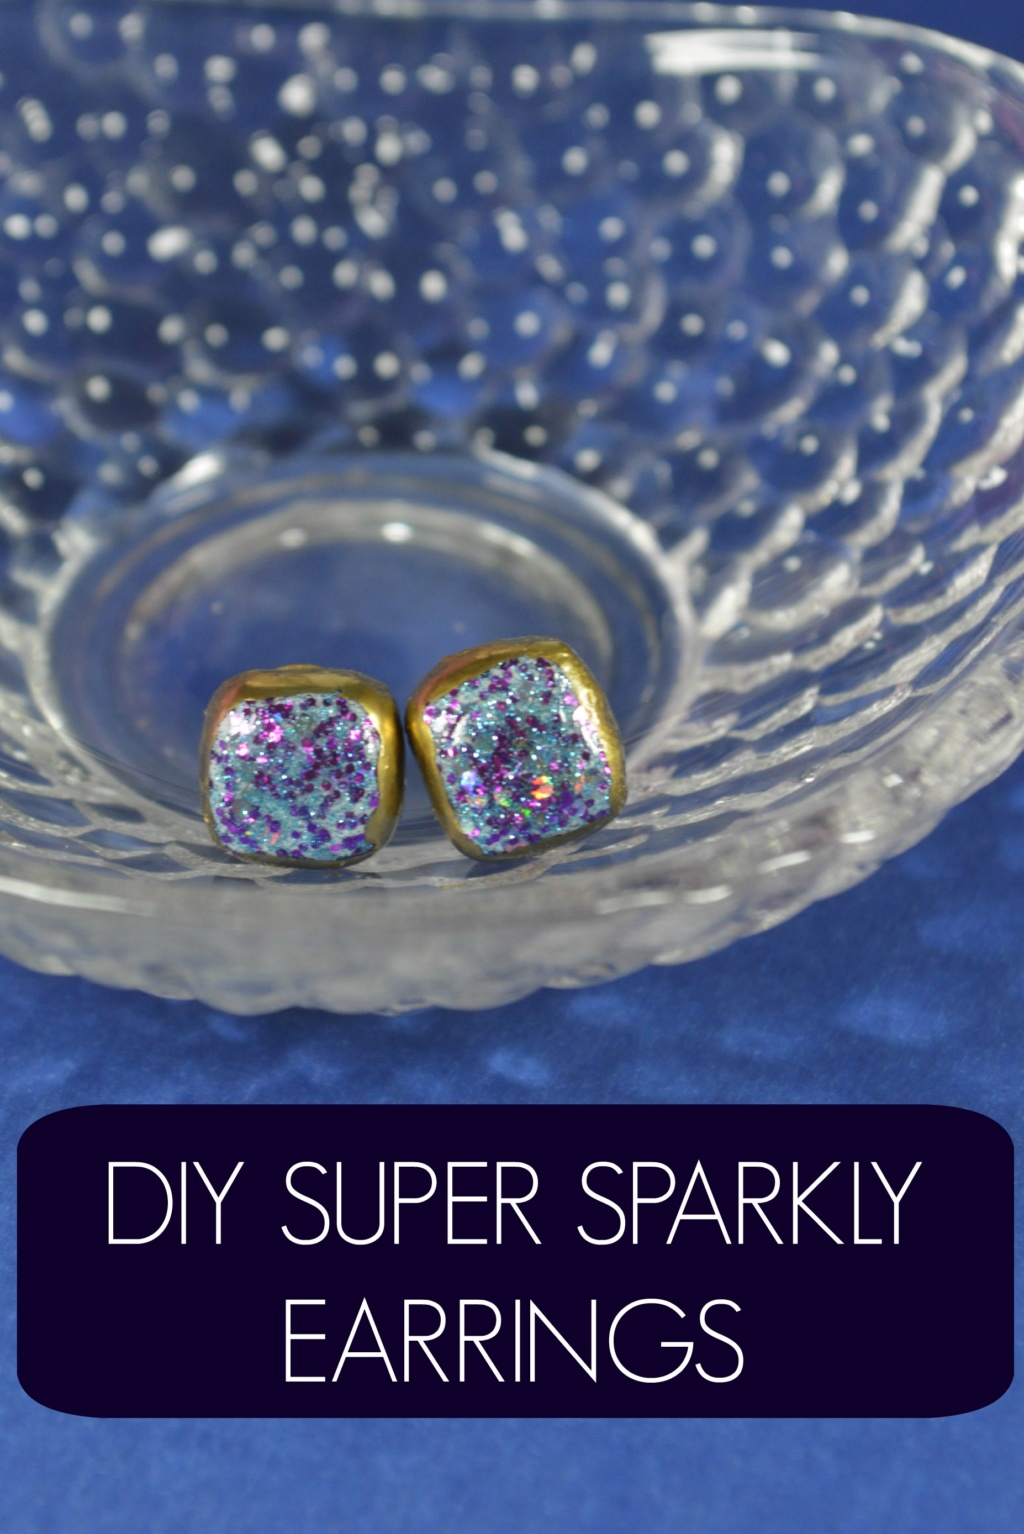 DIY Super Sparkly Earrings